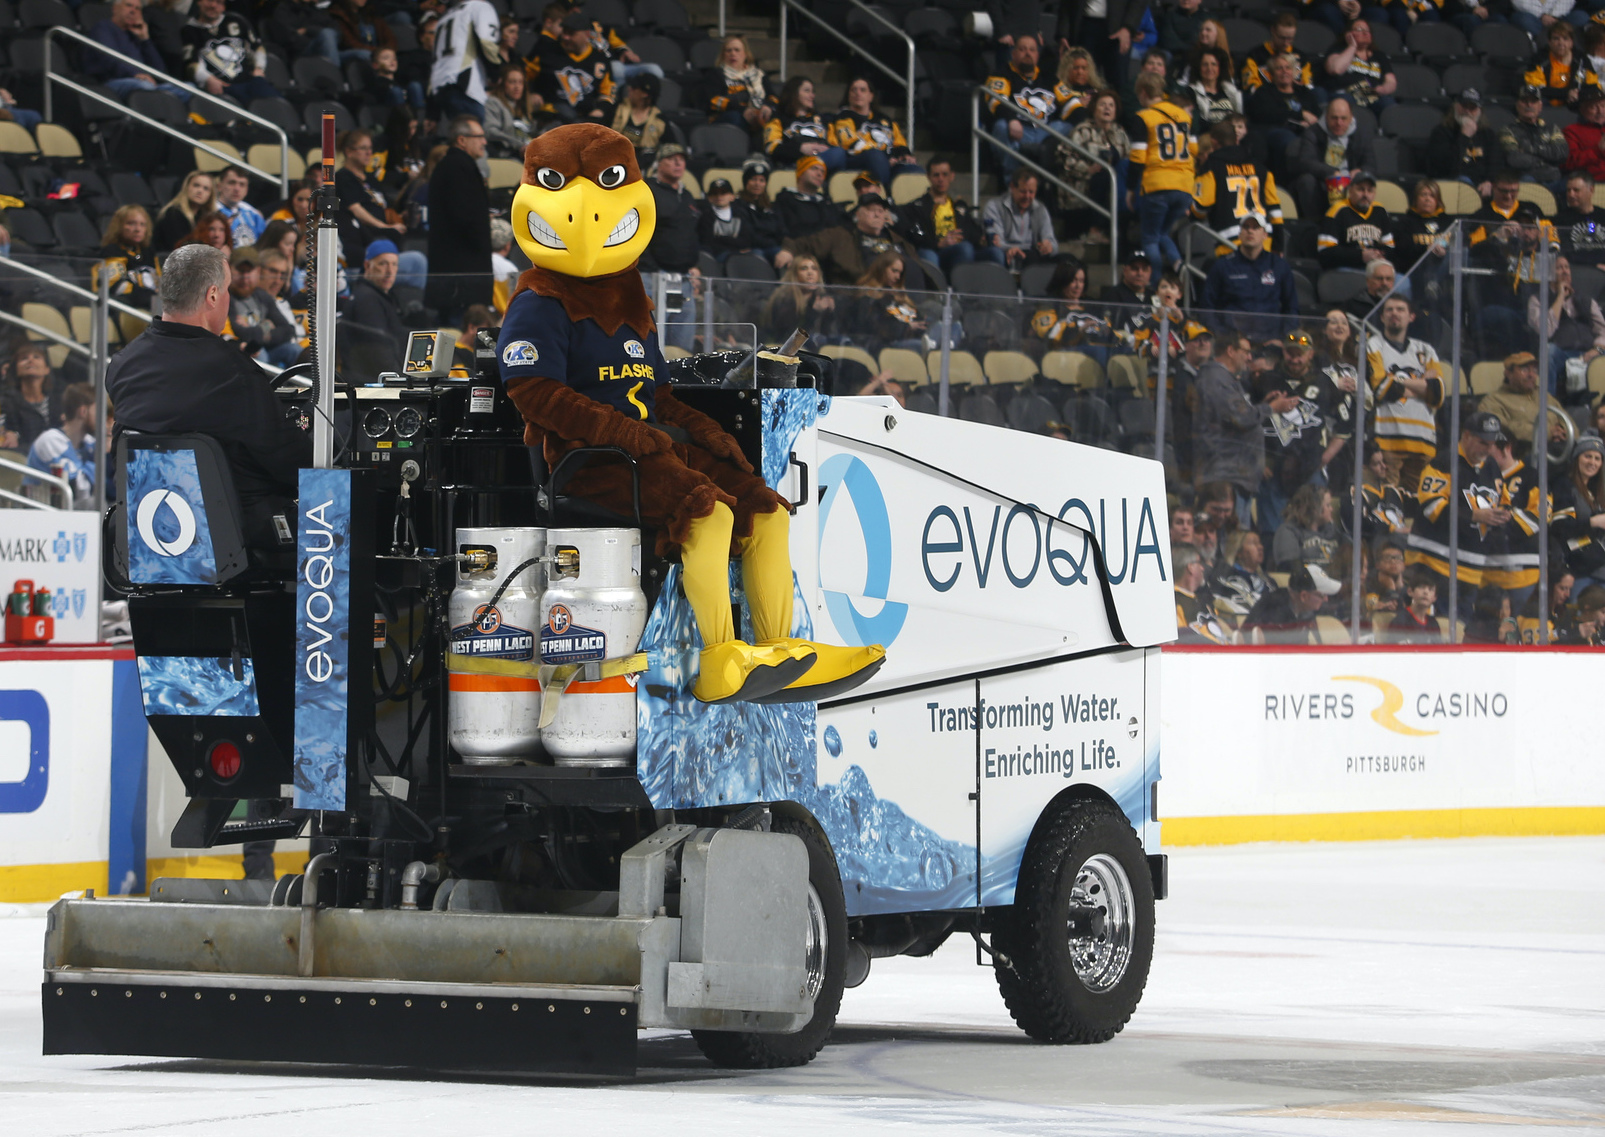 Kent State's Flash ridiing the Zamboni at PPG Paints Arena in Pittsburgh